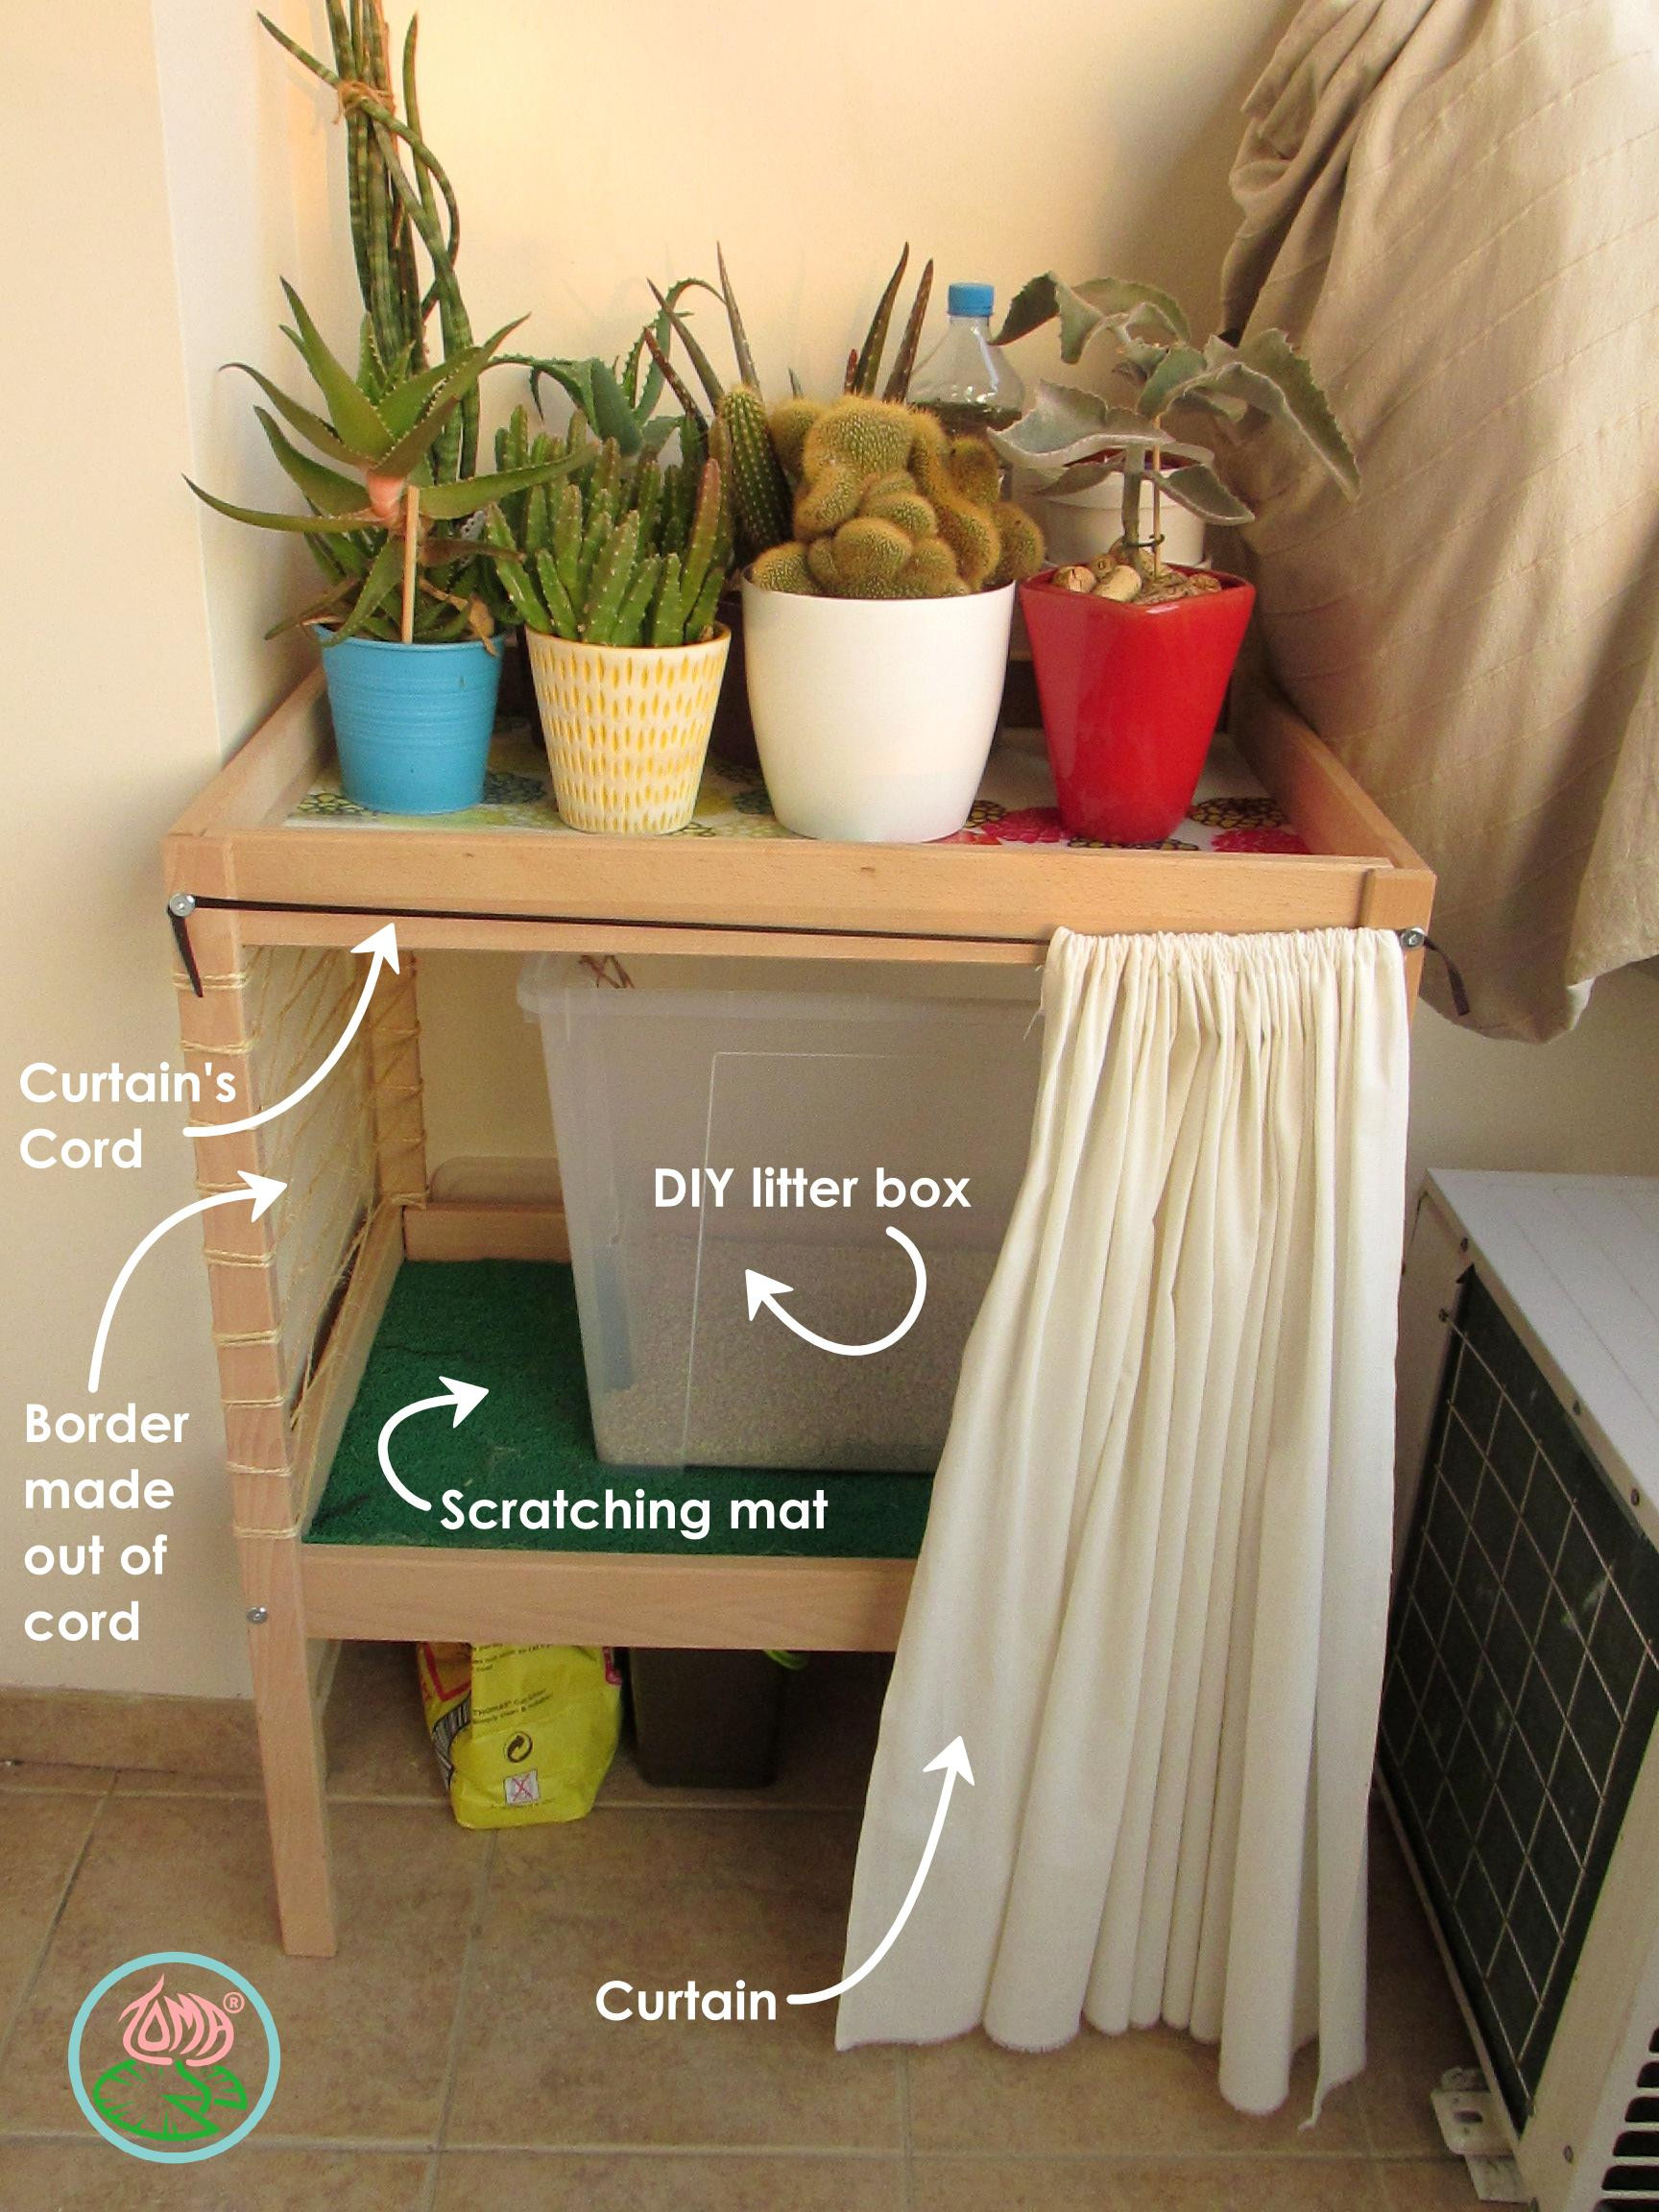 Best ideas about DIY Kitty Litter . Save or Pin DIY Cat Litter Box & Storage Furniture Now.